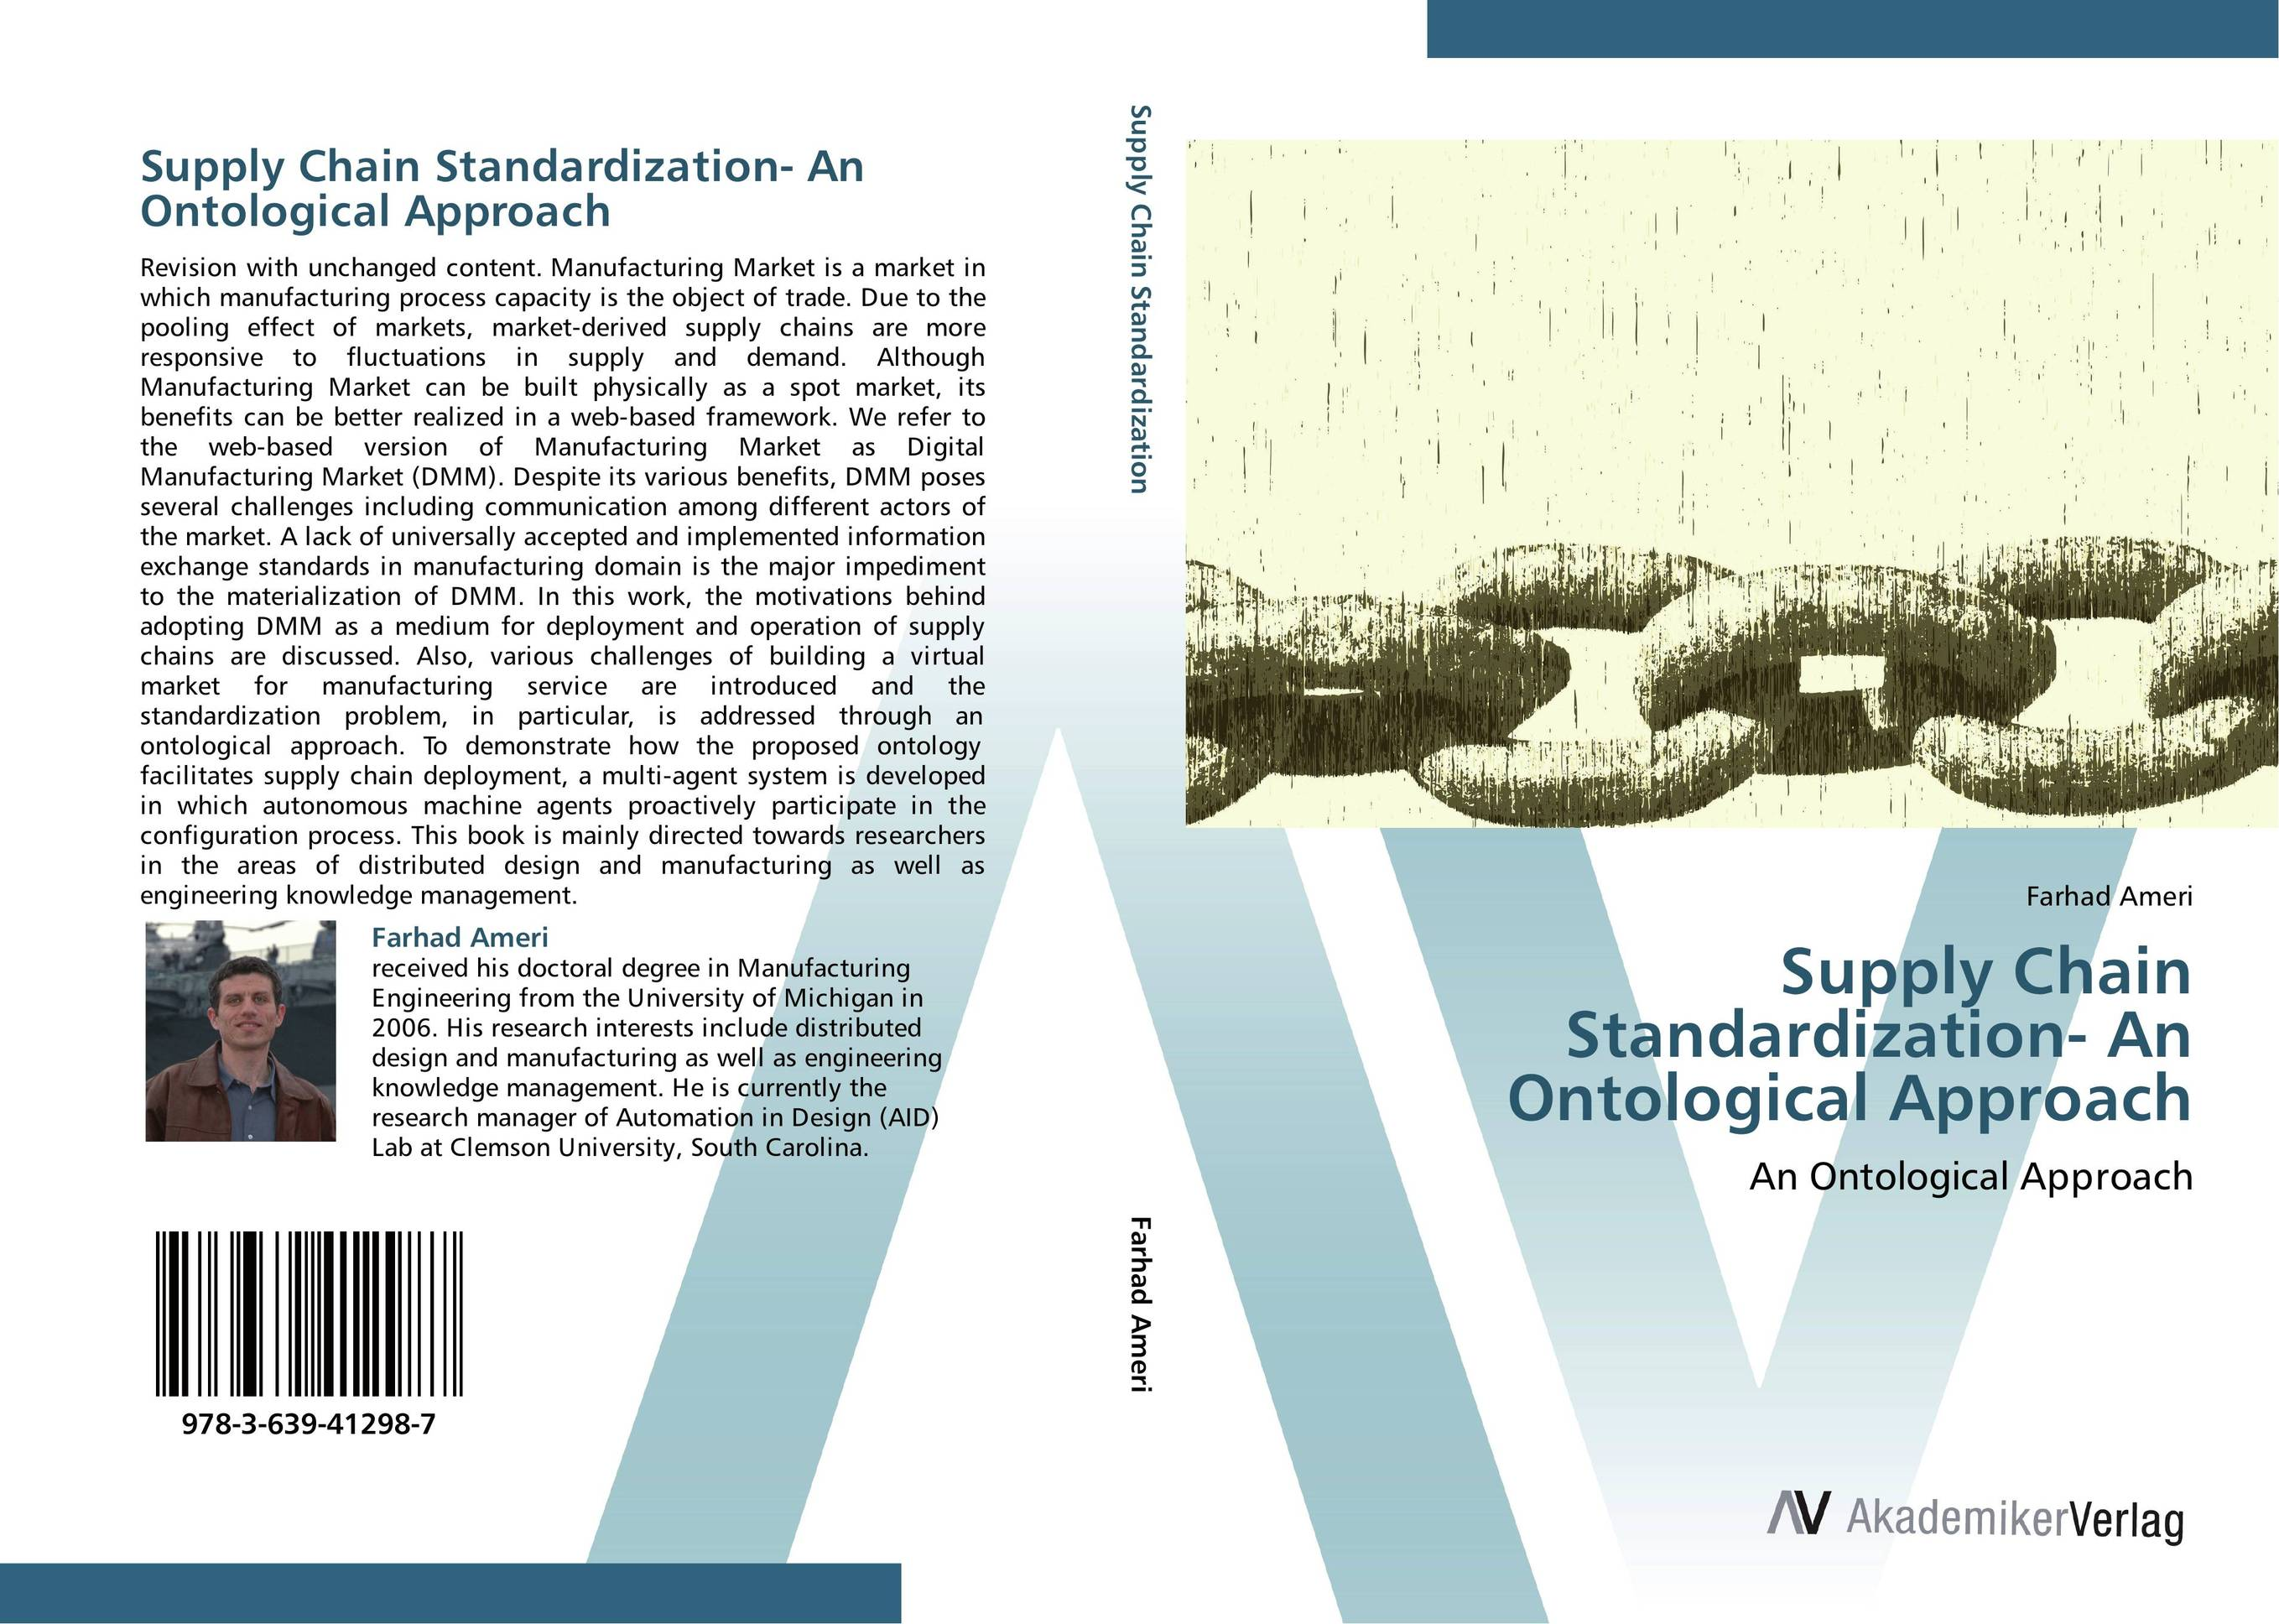 Supply Chain Standardization- An Ontological Approach charles chase w bricks matter the role of supply chains in building market driven differentiation